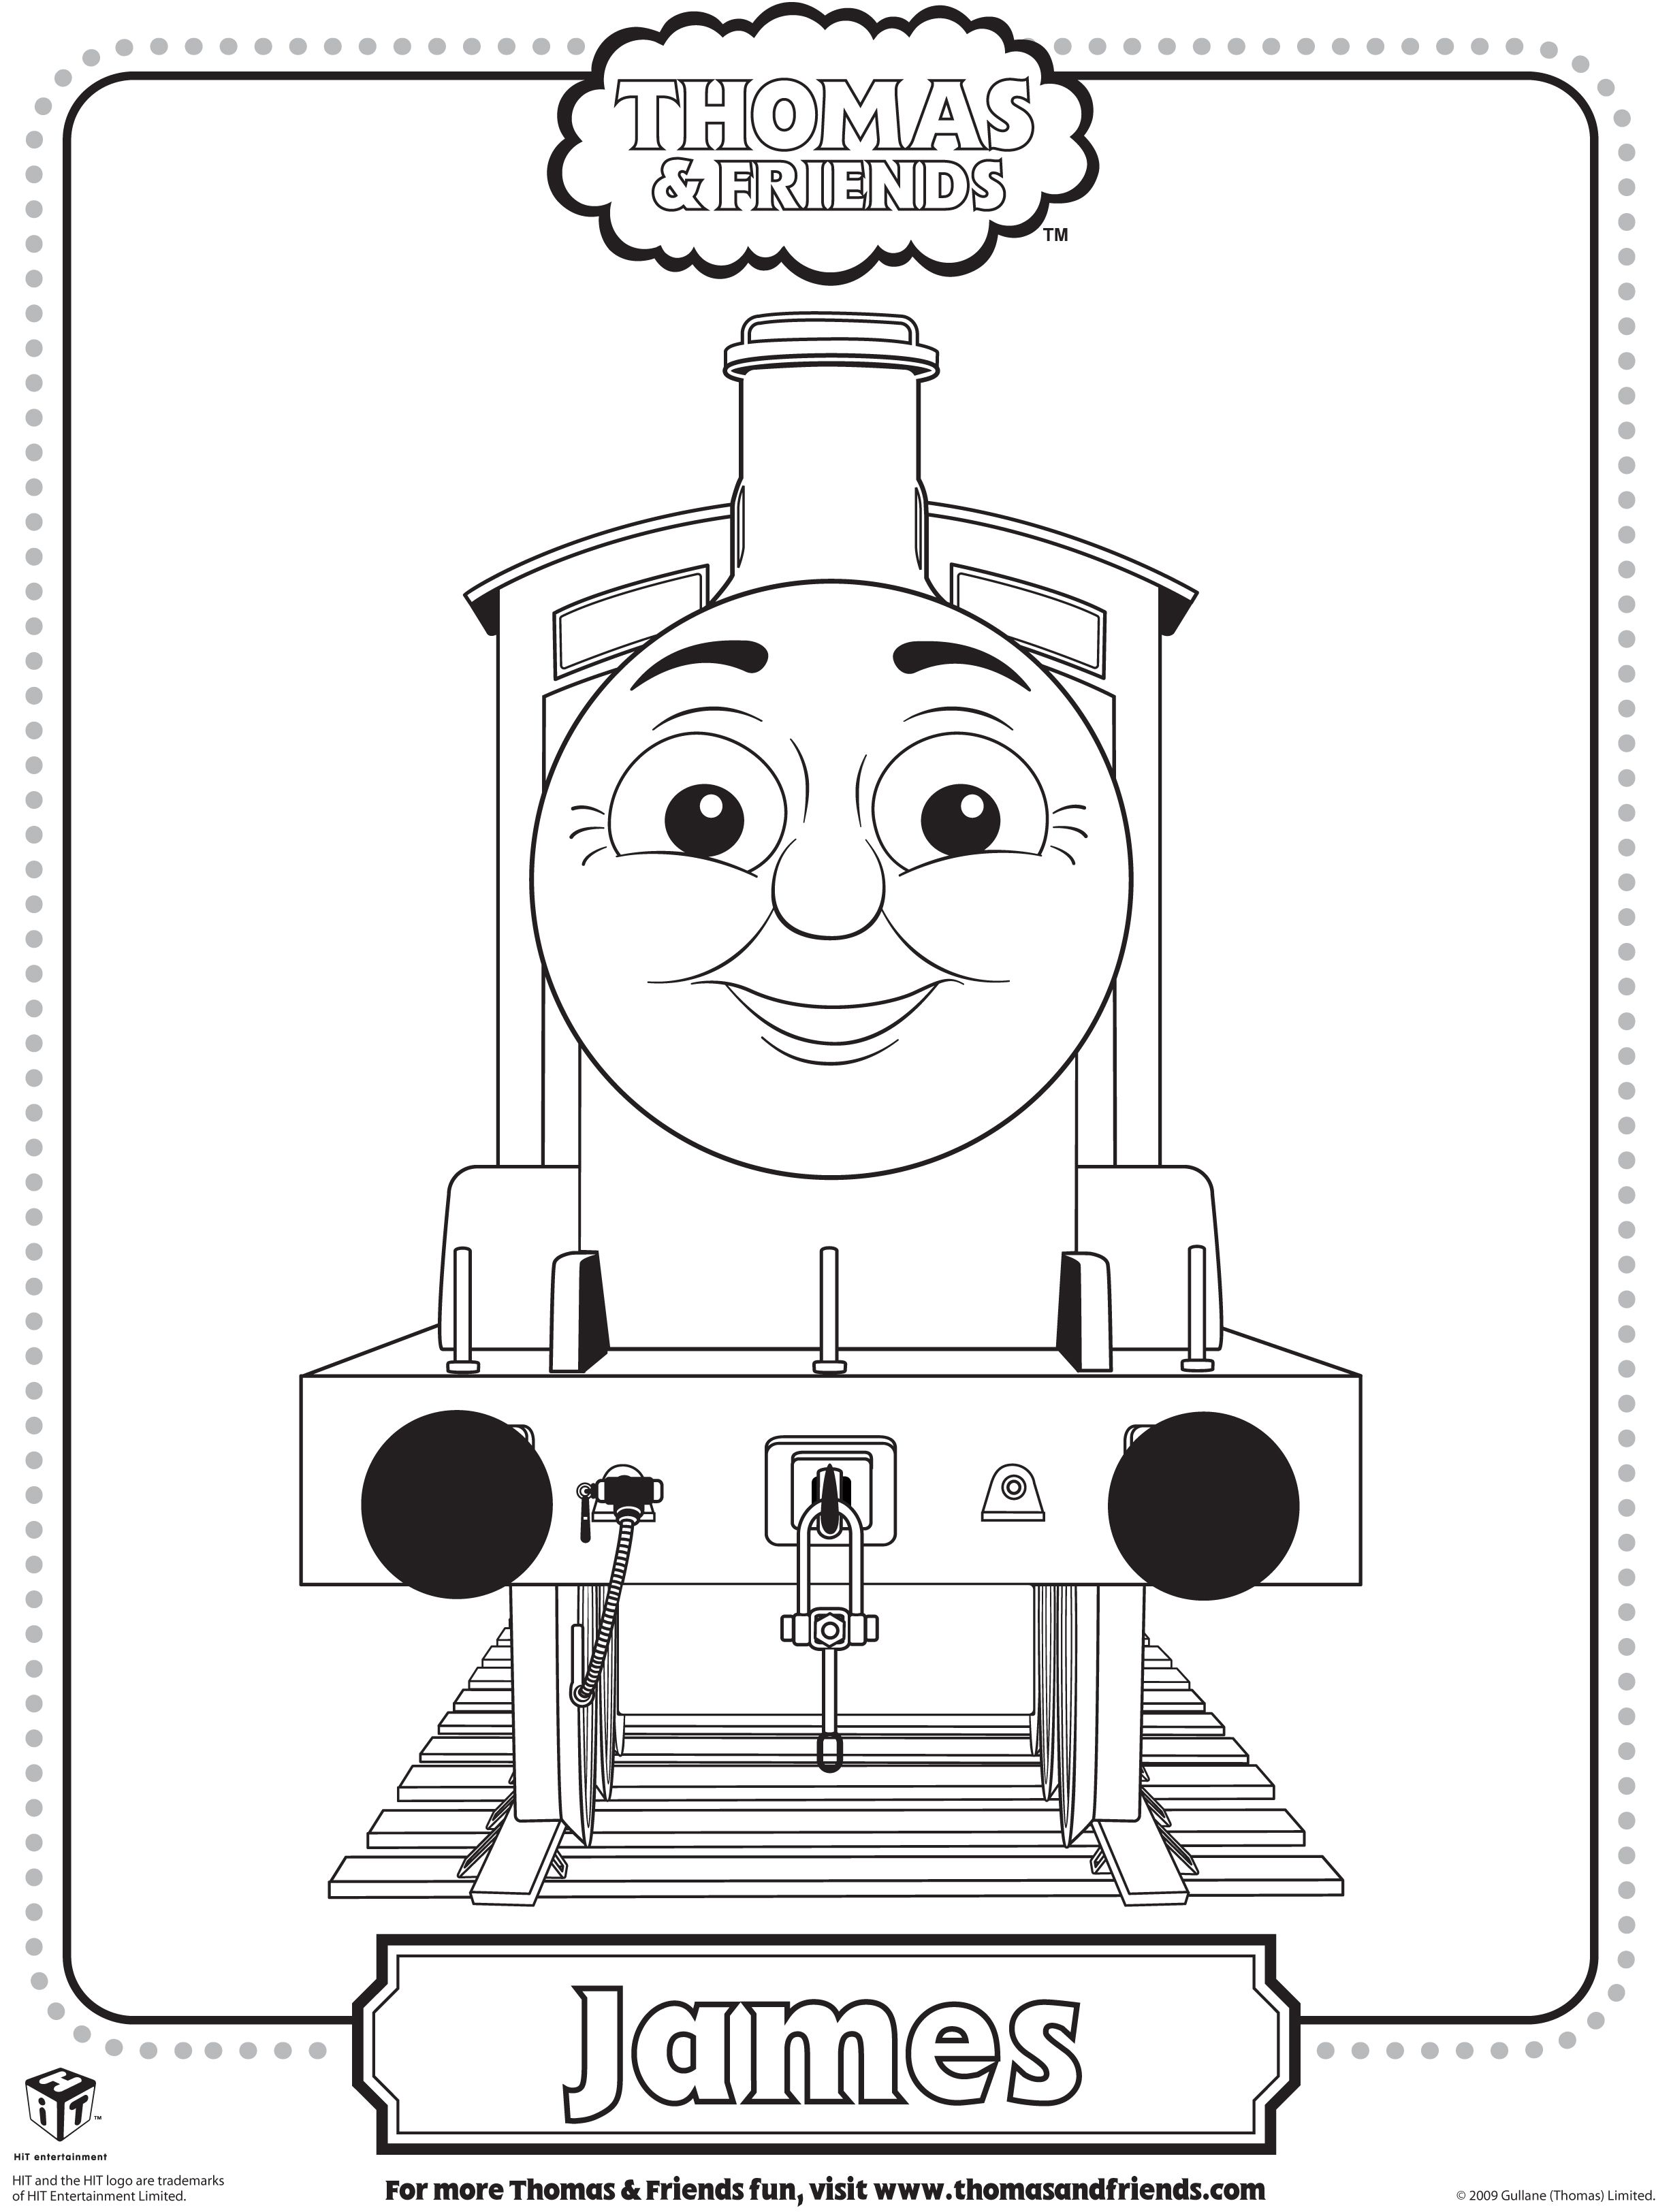 Train boxcar coloring pages - Colouring Pages Of James In Thomas Tank Google Search